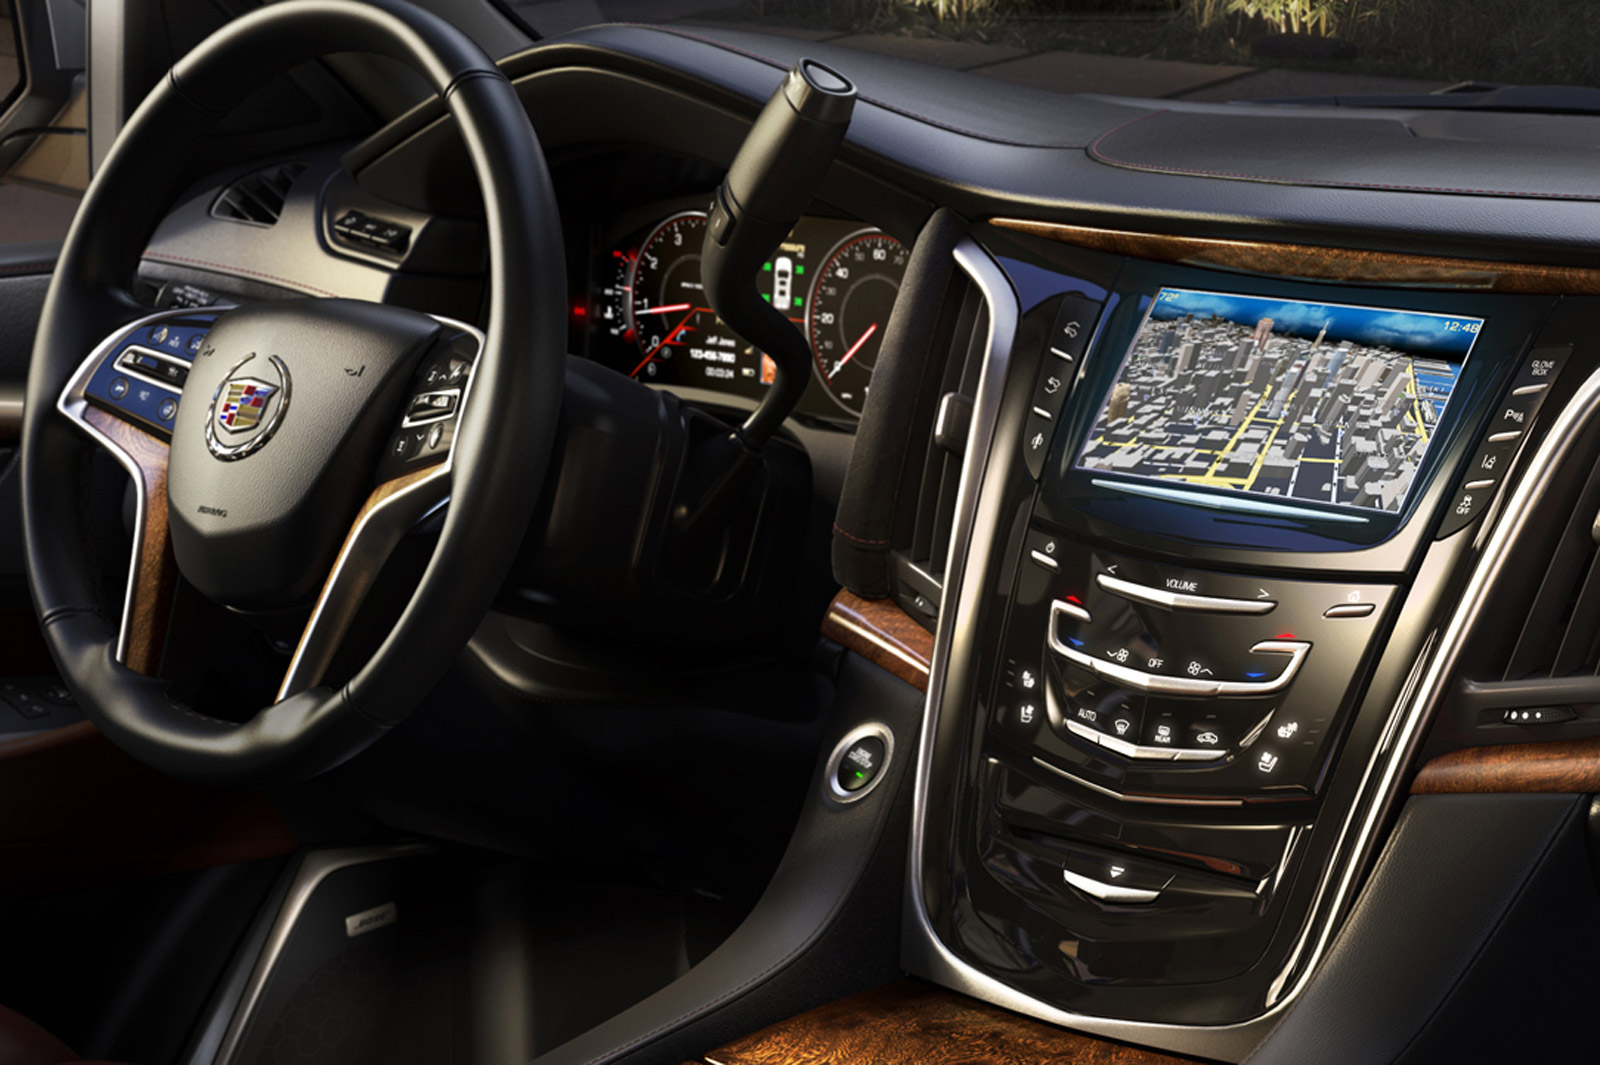 2015 Cadillac Escalade S Interior Revealed In Latest Teaser